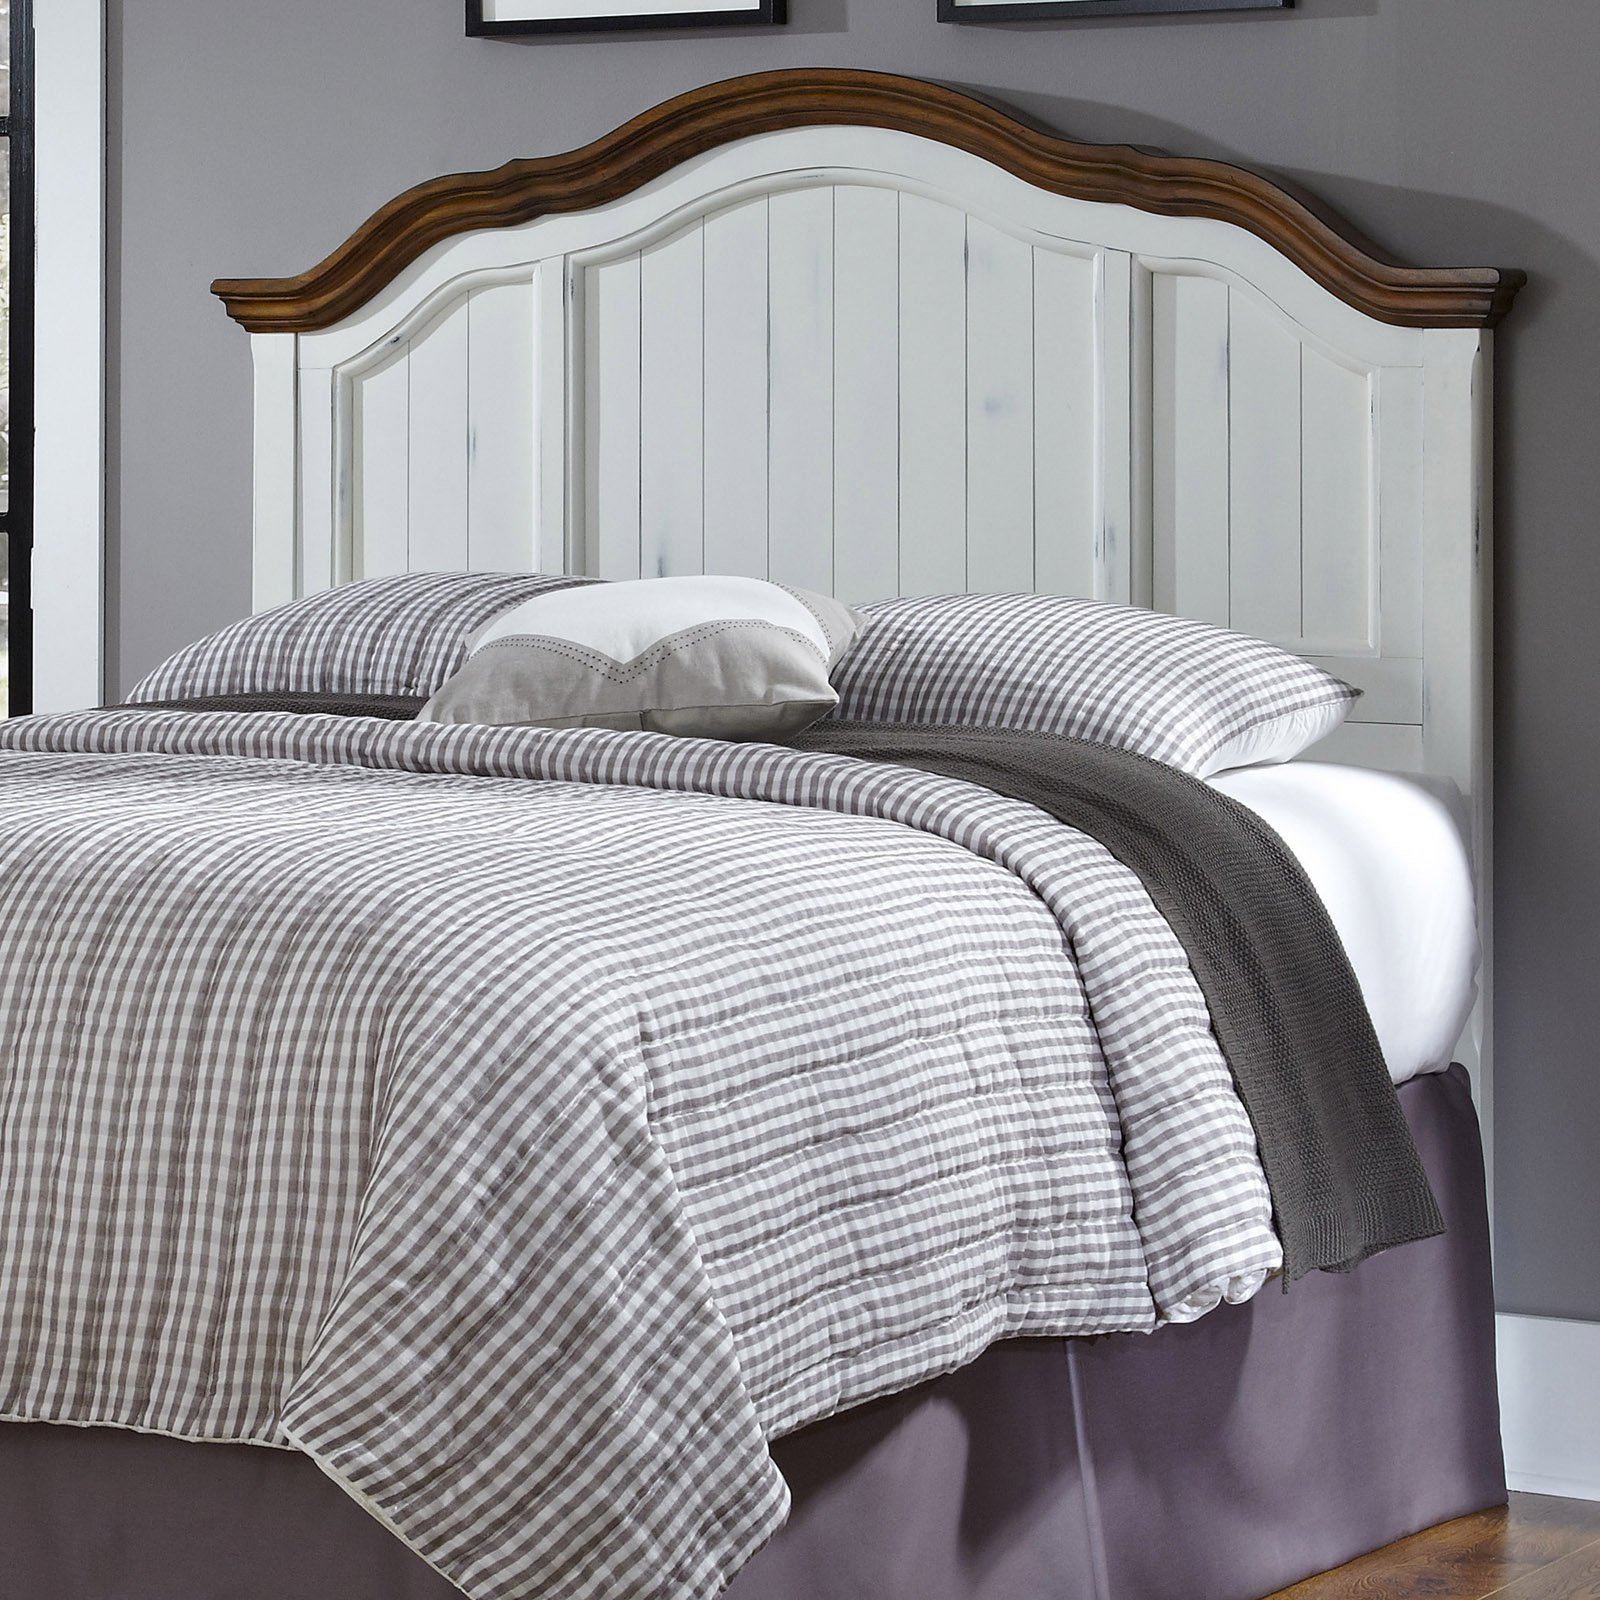 The French Countryside Oak and Rubbed White Full/Queen Headboard